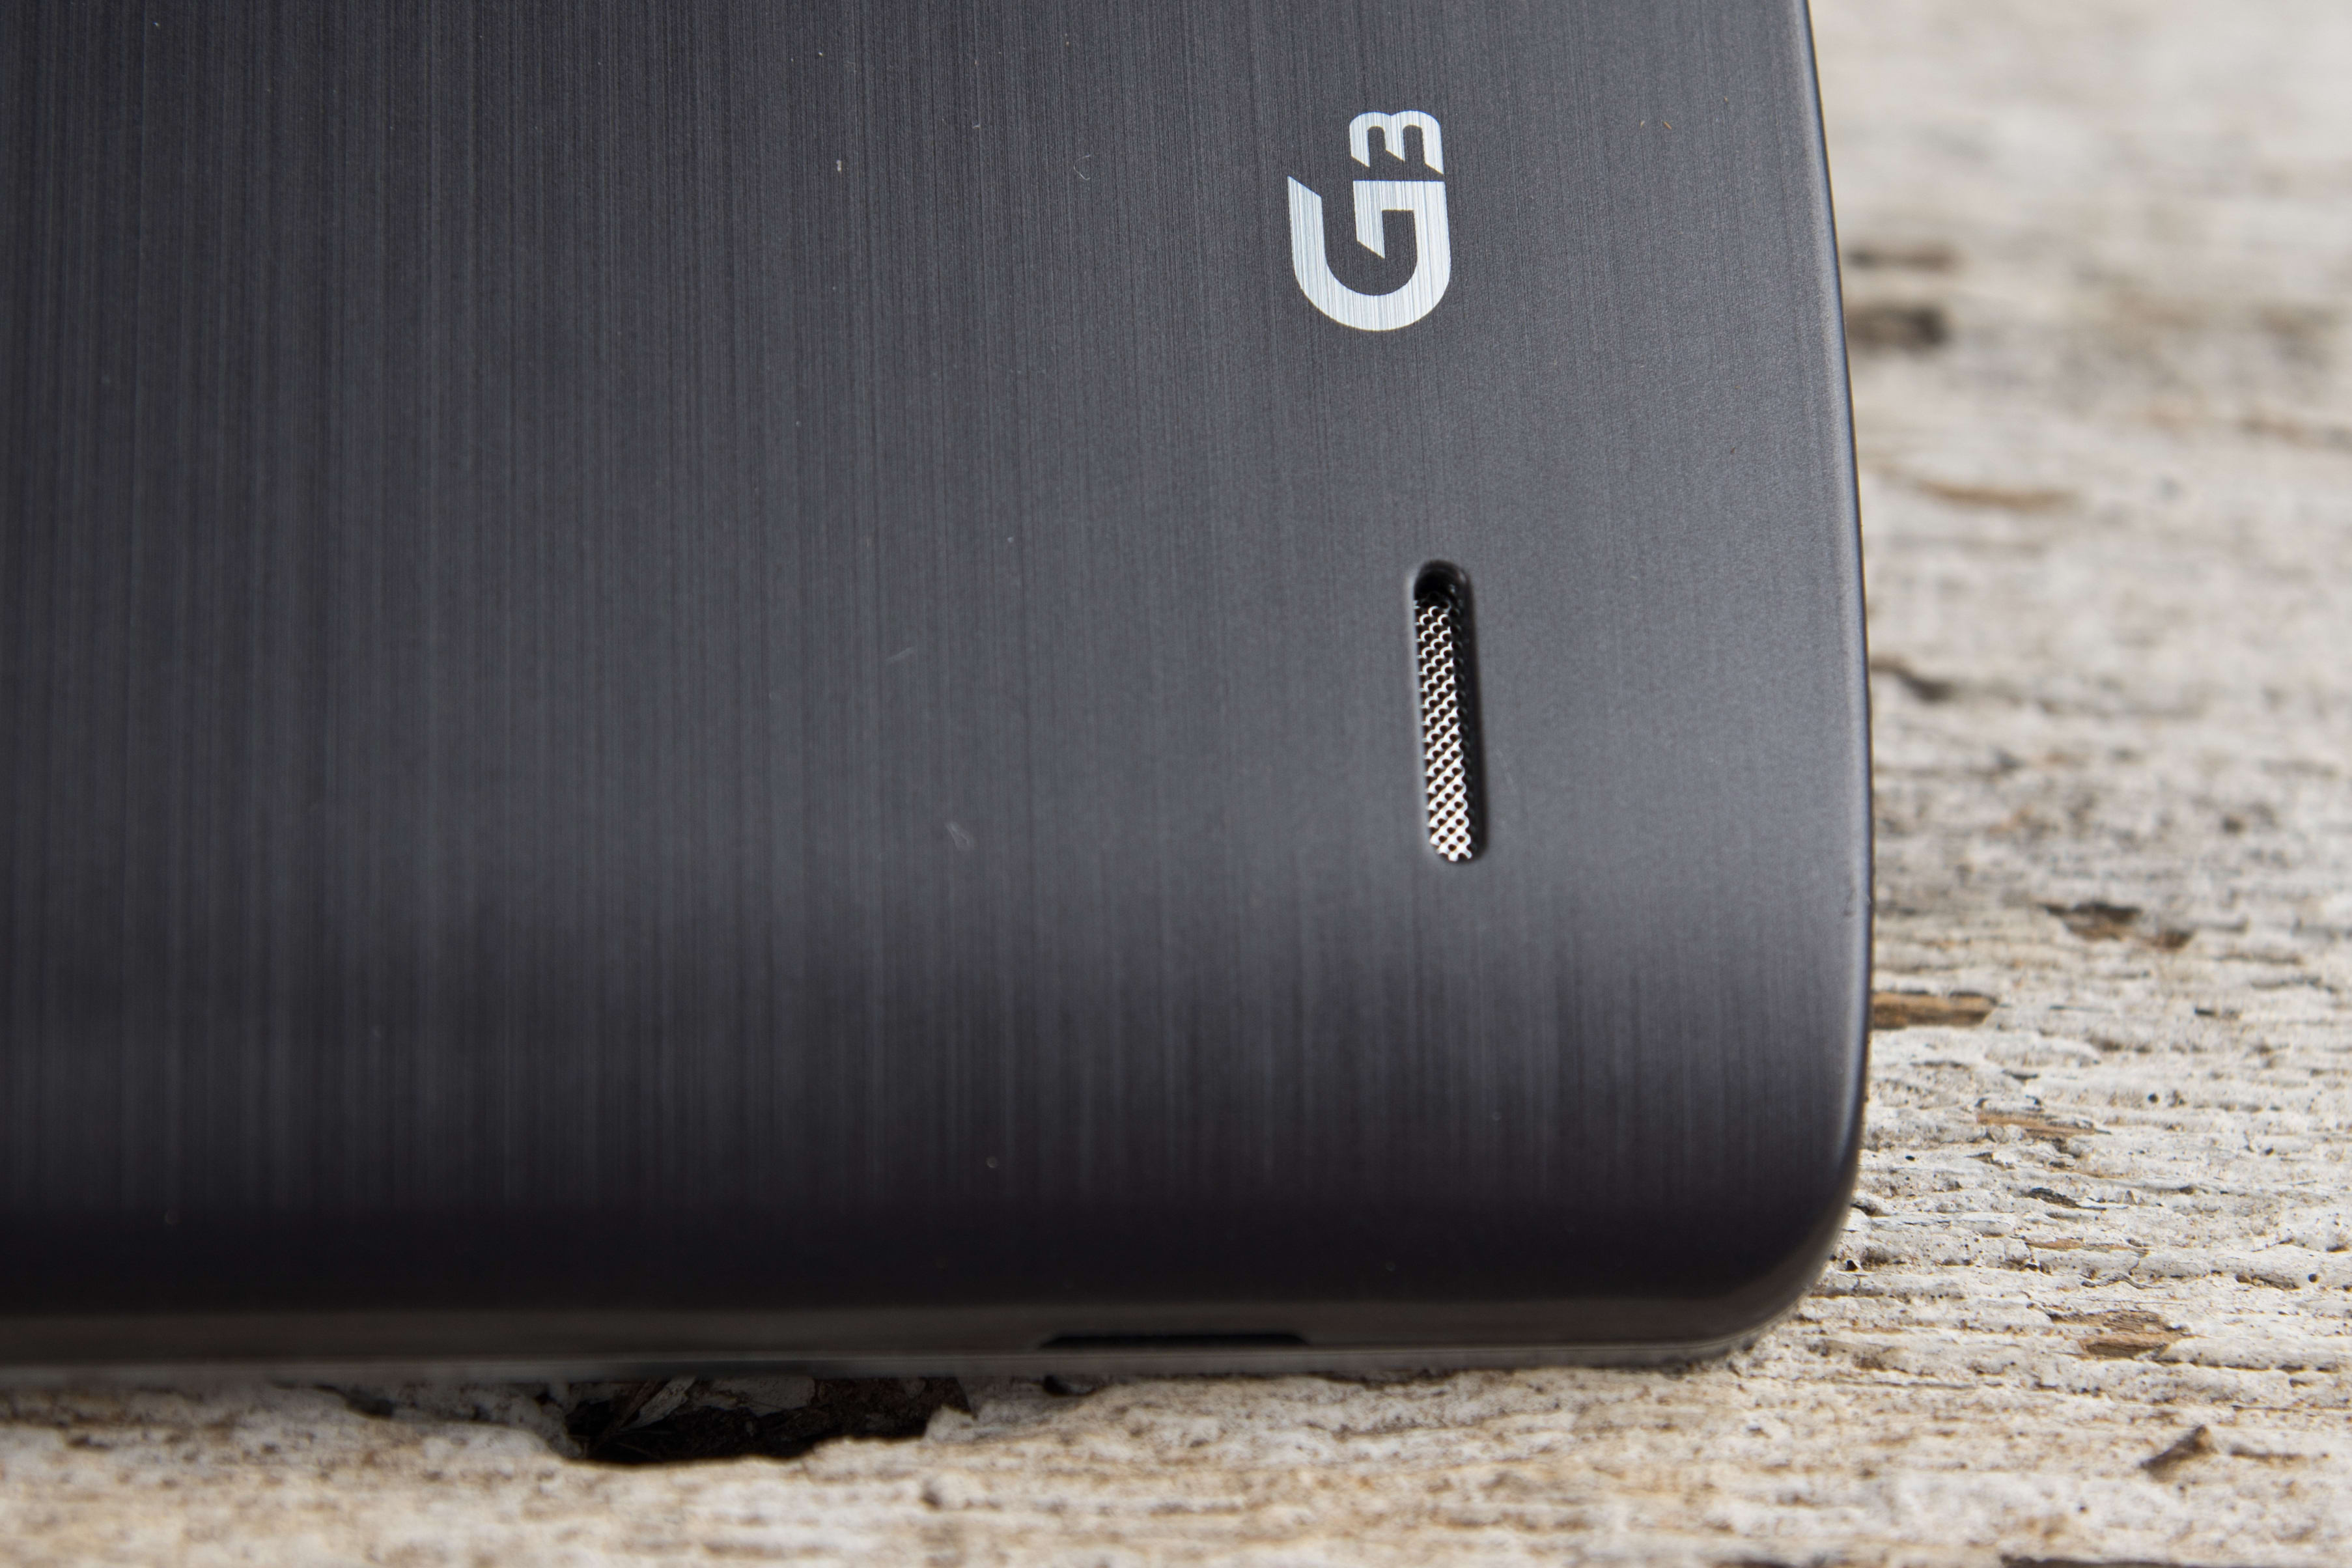 A close-up photo of the LG G3's speaker.